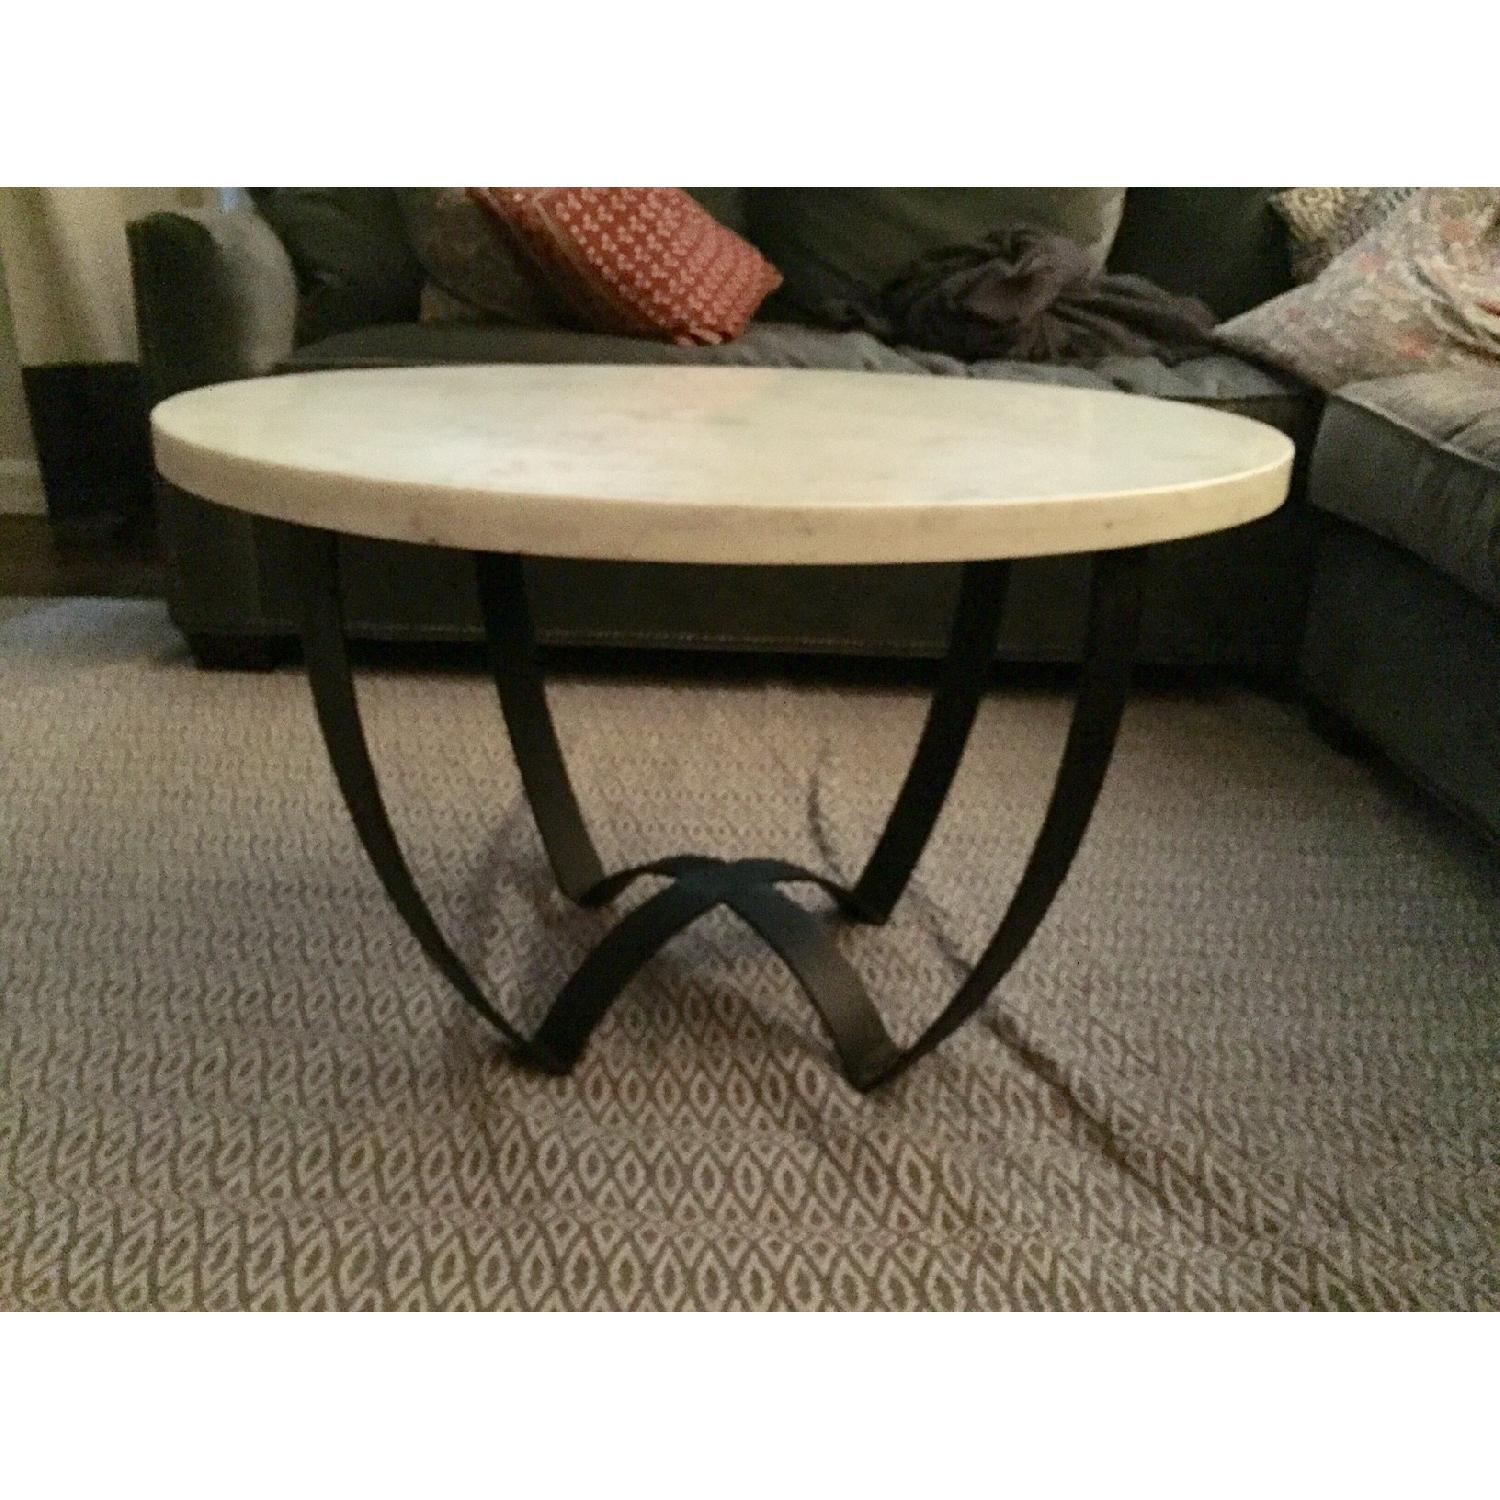 Marble Top Coffee Table w/ Metal Base - image-2